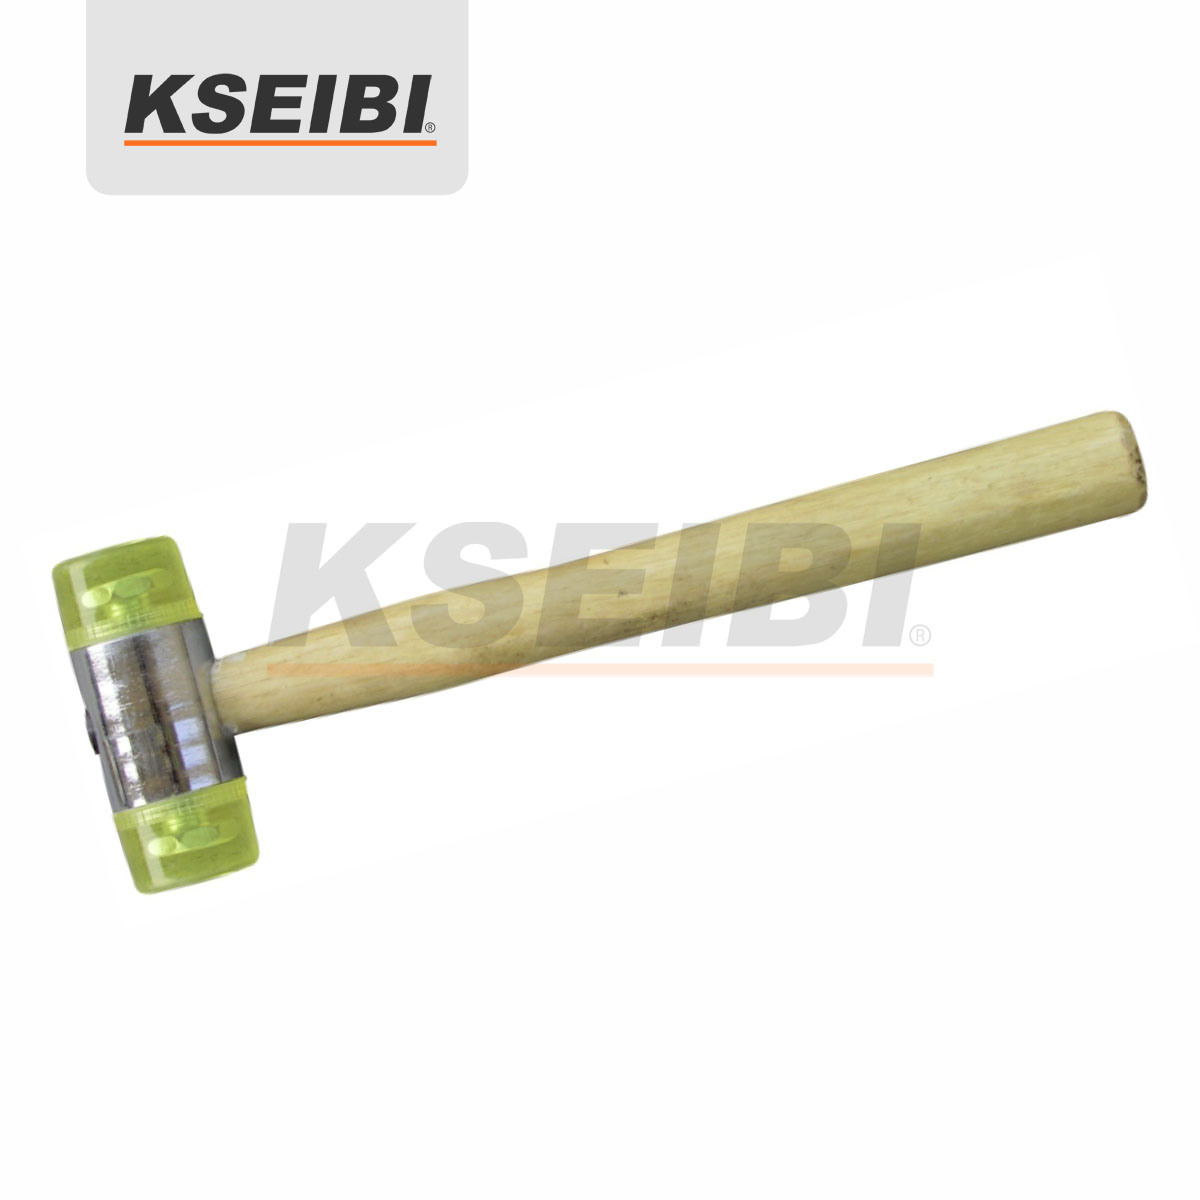 Kseibi One Way Soft Head Mallet Hammer with Wooden Hand